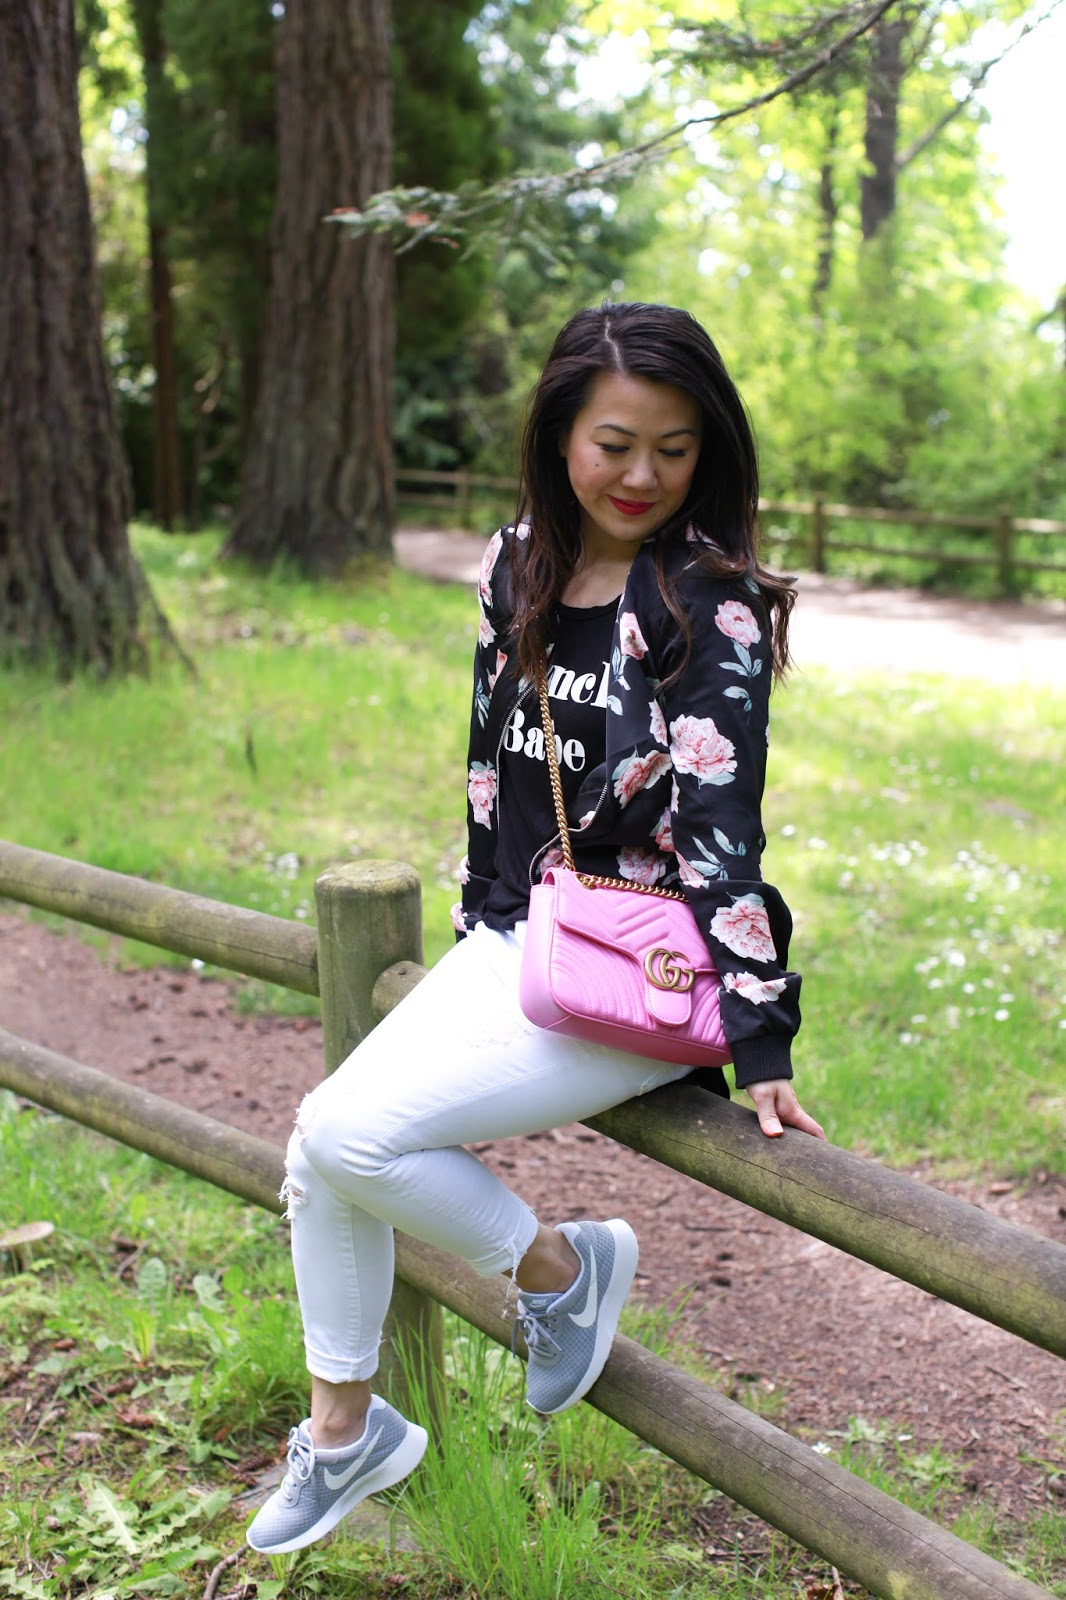 How to wear sneakers and look cute